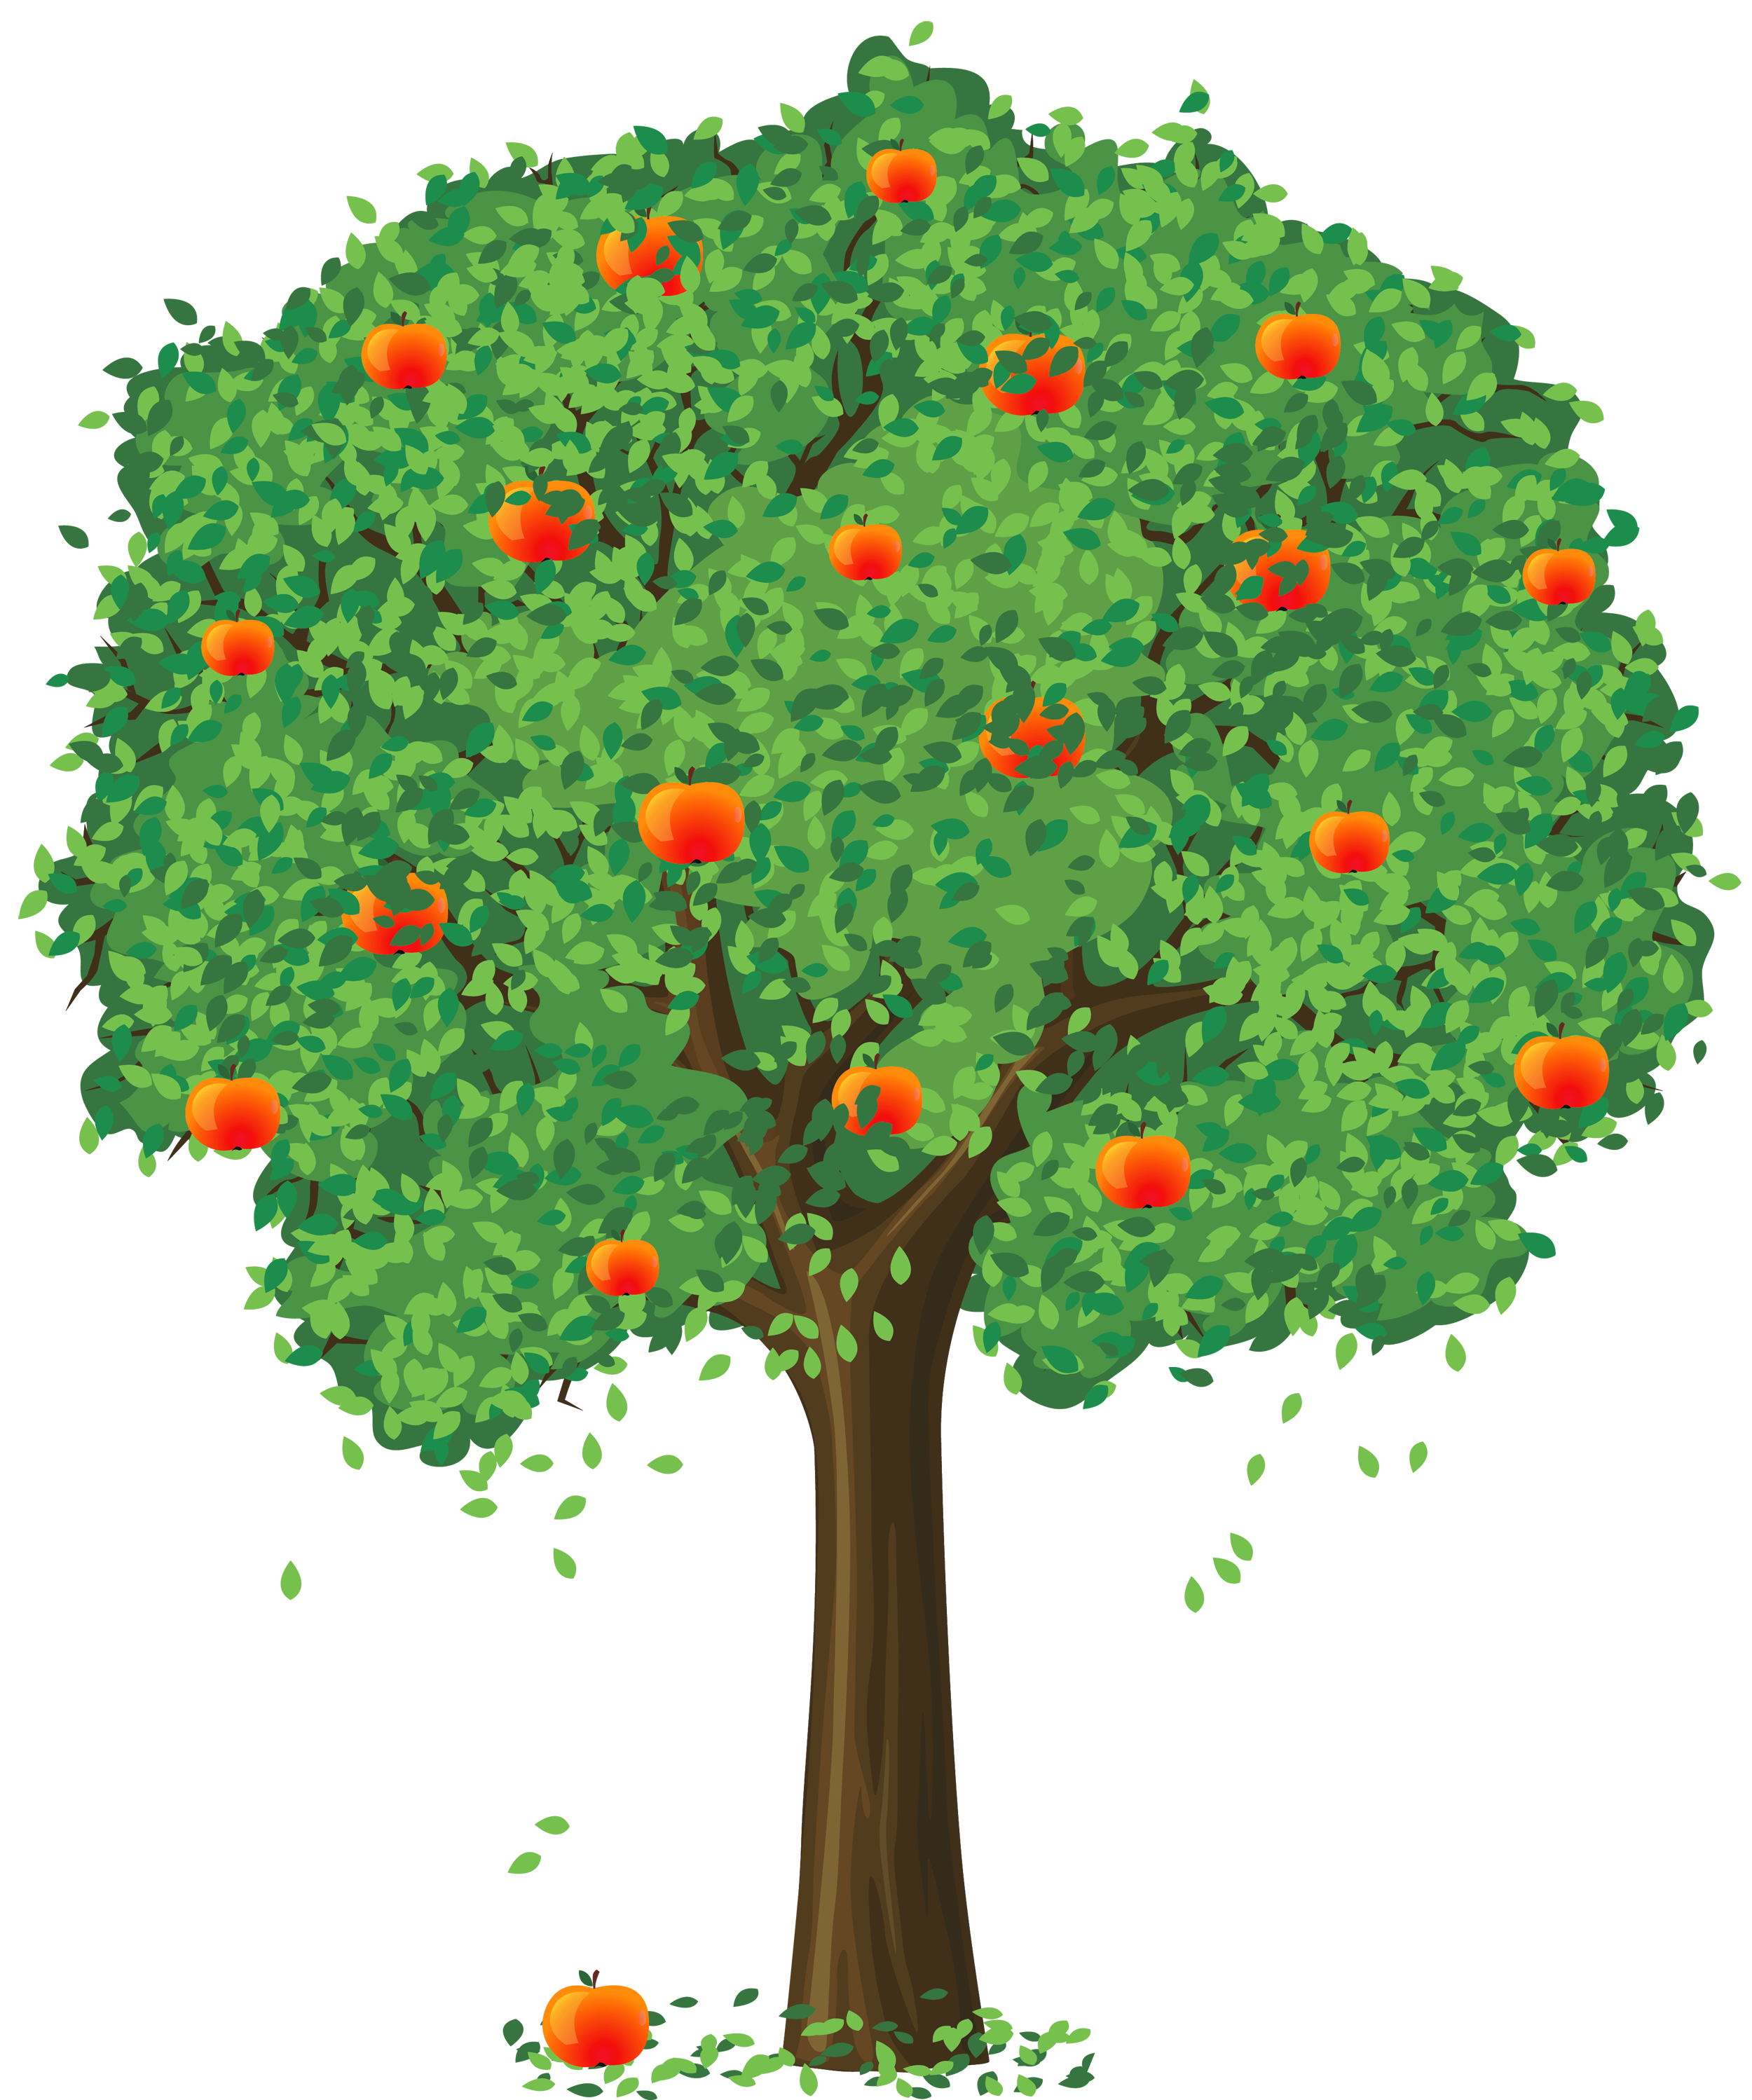 Tree clipart february. Apple png letters format